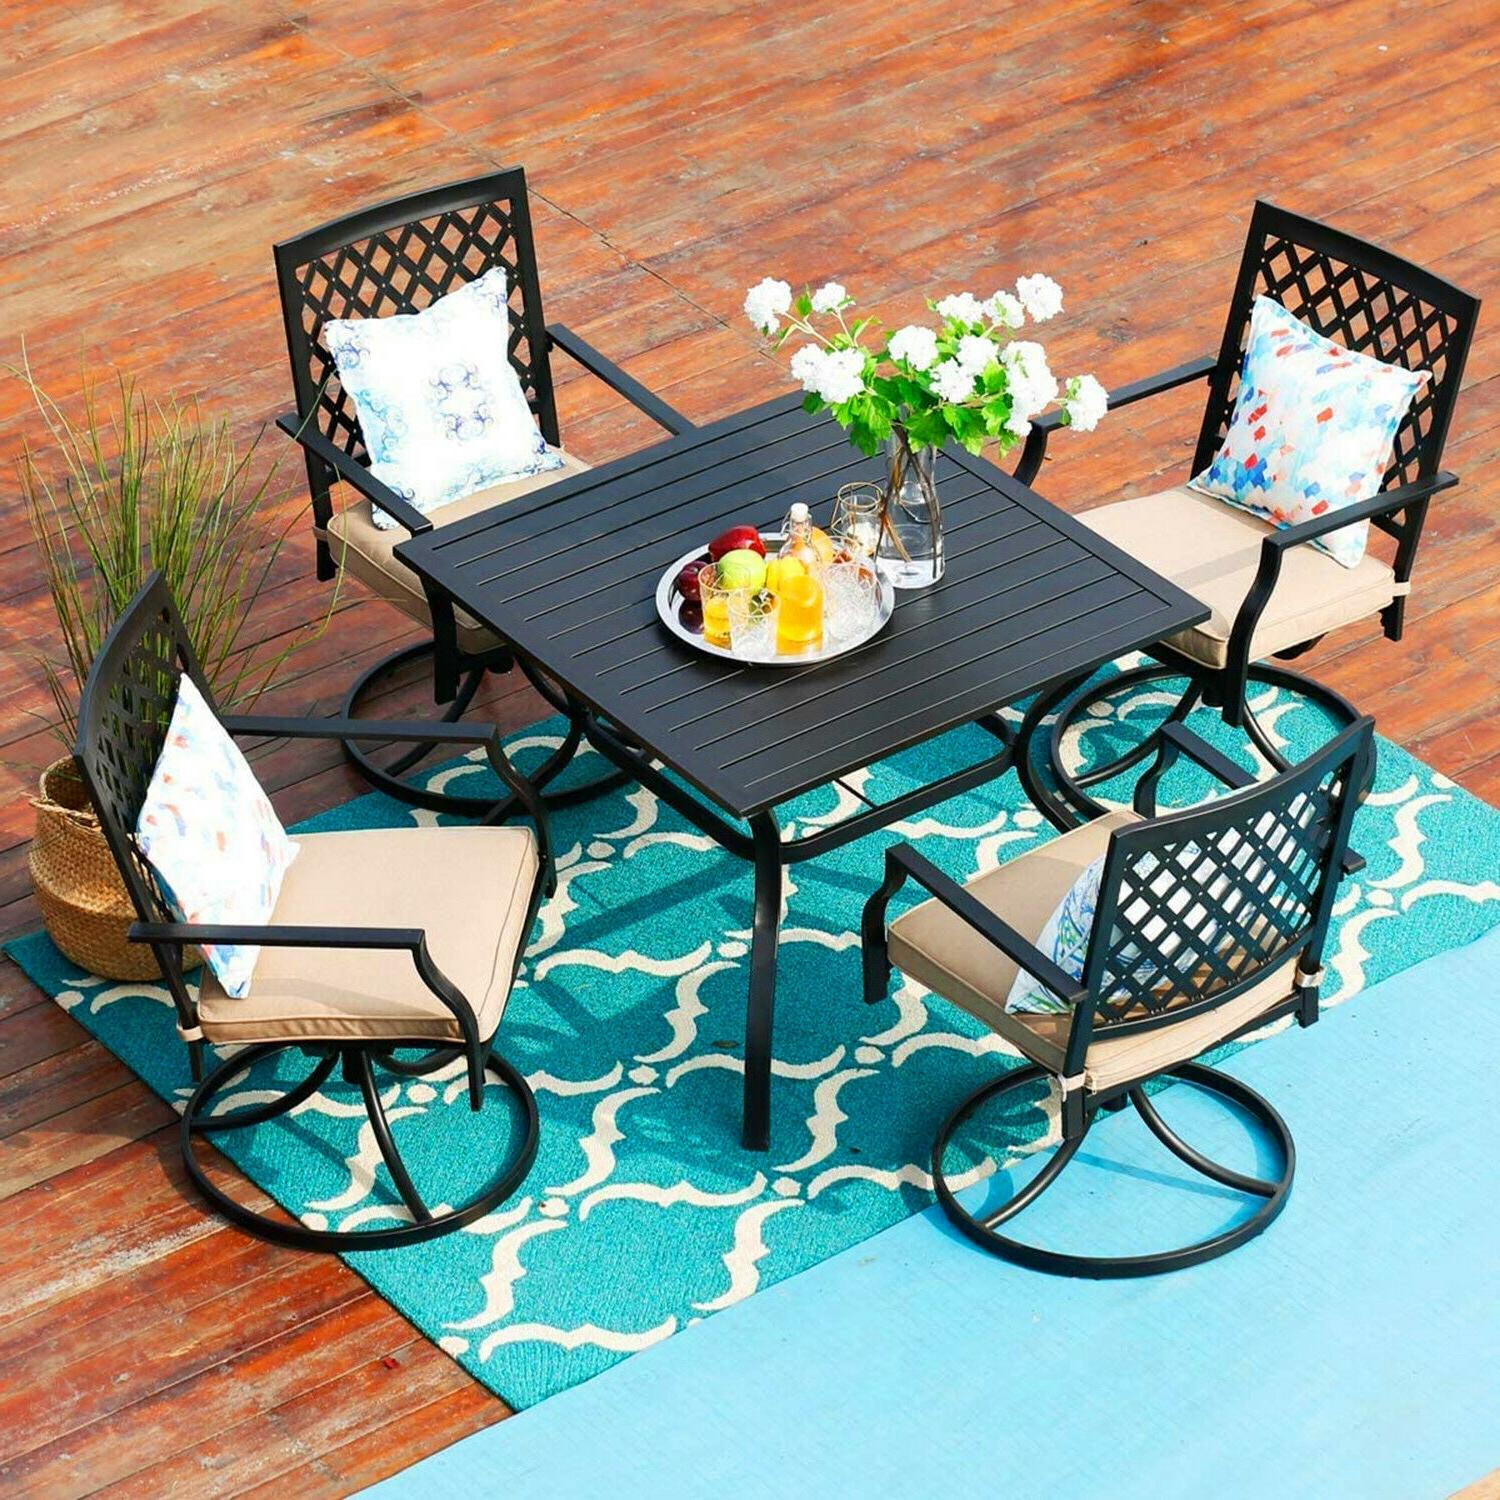 Metal Chair of 2 Swivel Chairs Outdoor